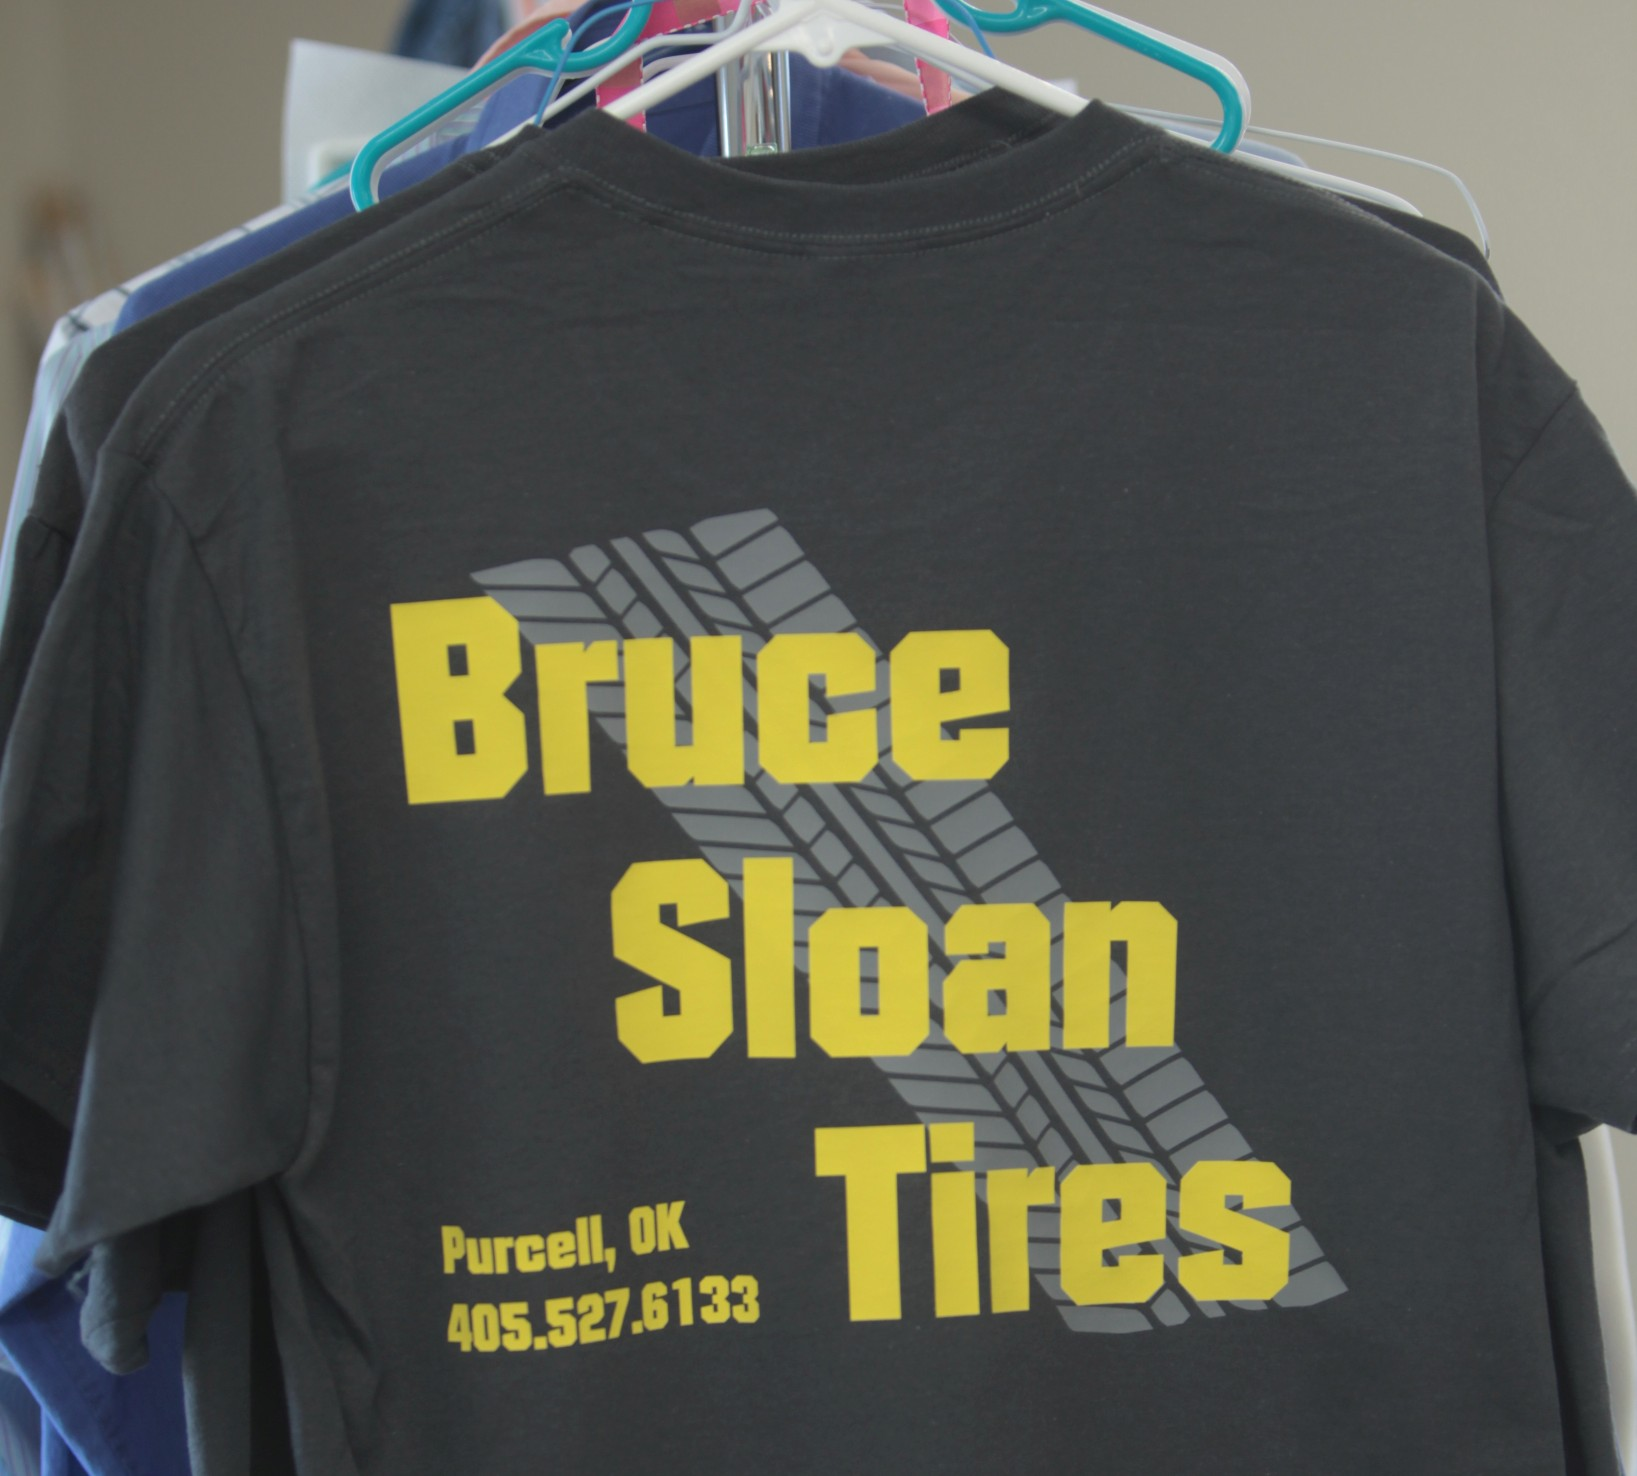 We made these shirts for the best tire shop on I-35 in south Oklahoma.